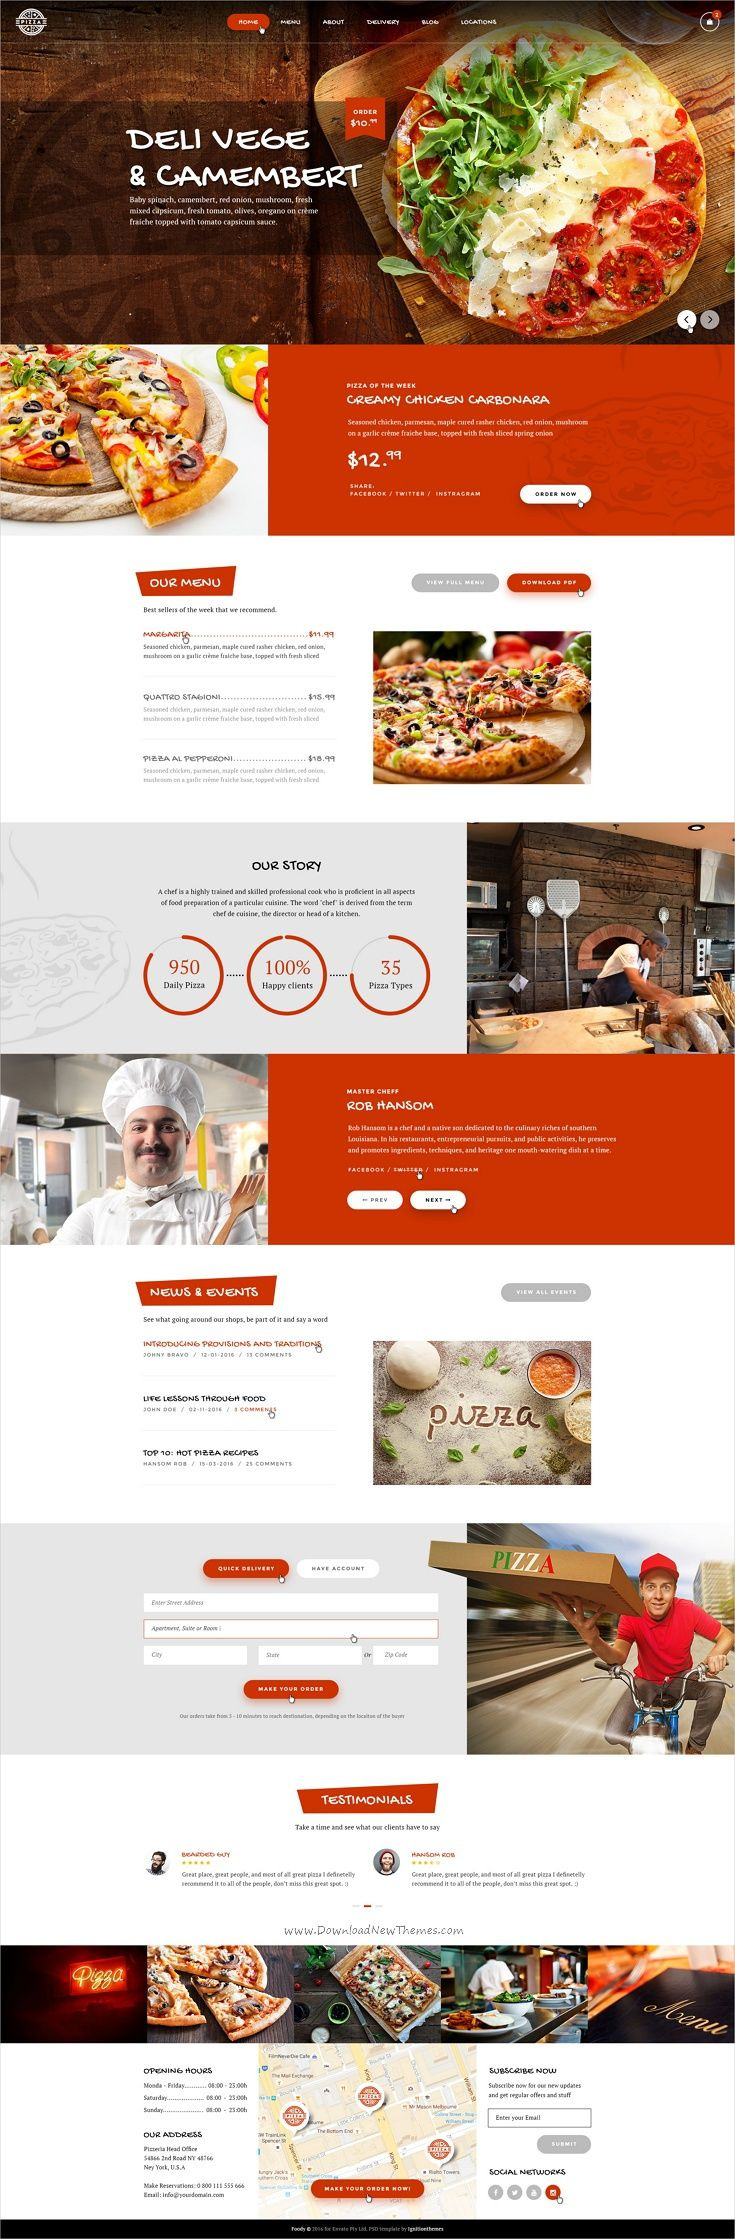 Pin by Profactions on Site & Landing Page Templates | Pinterest ...